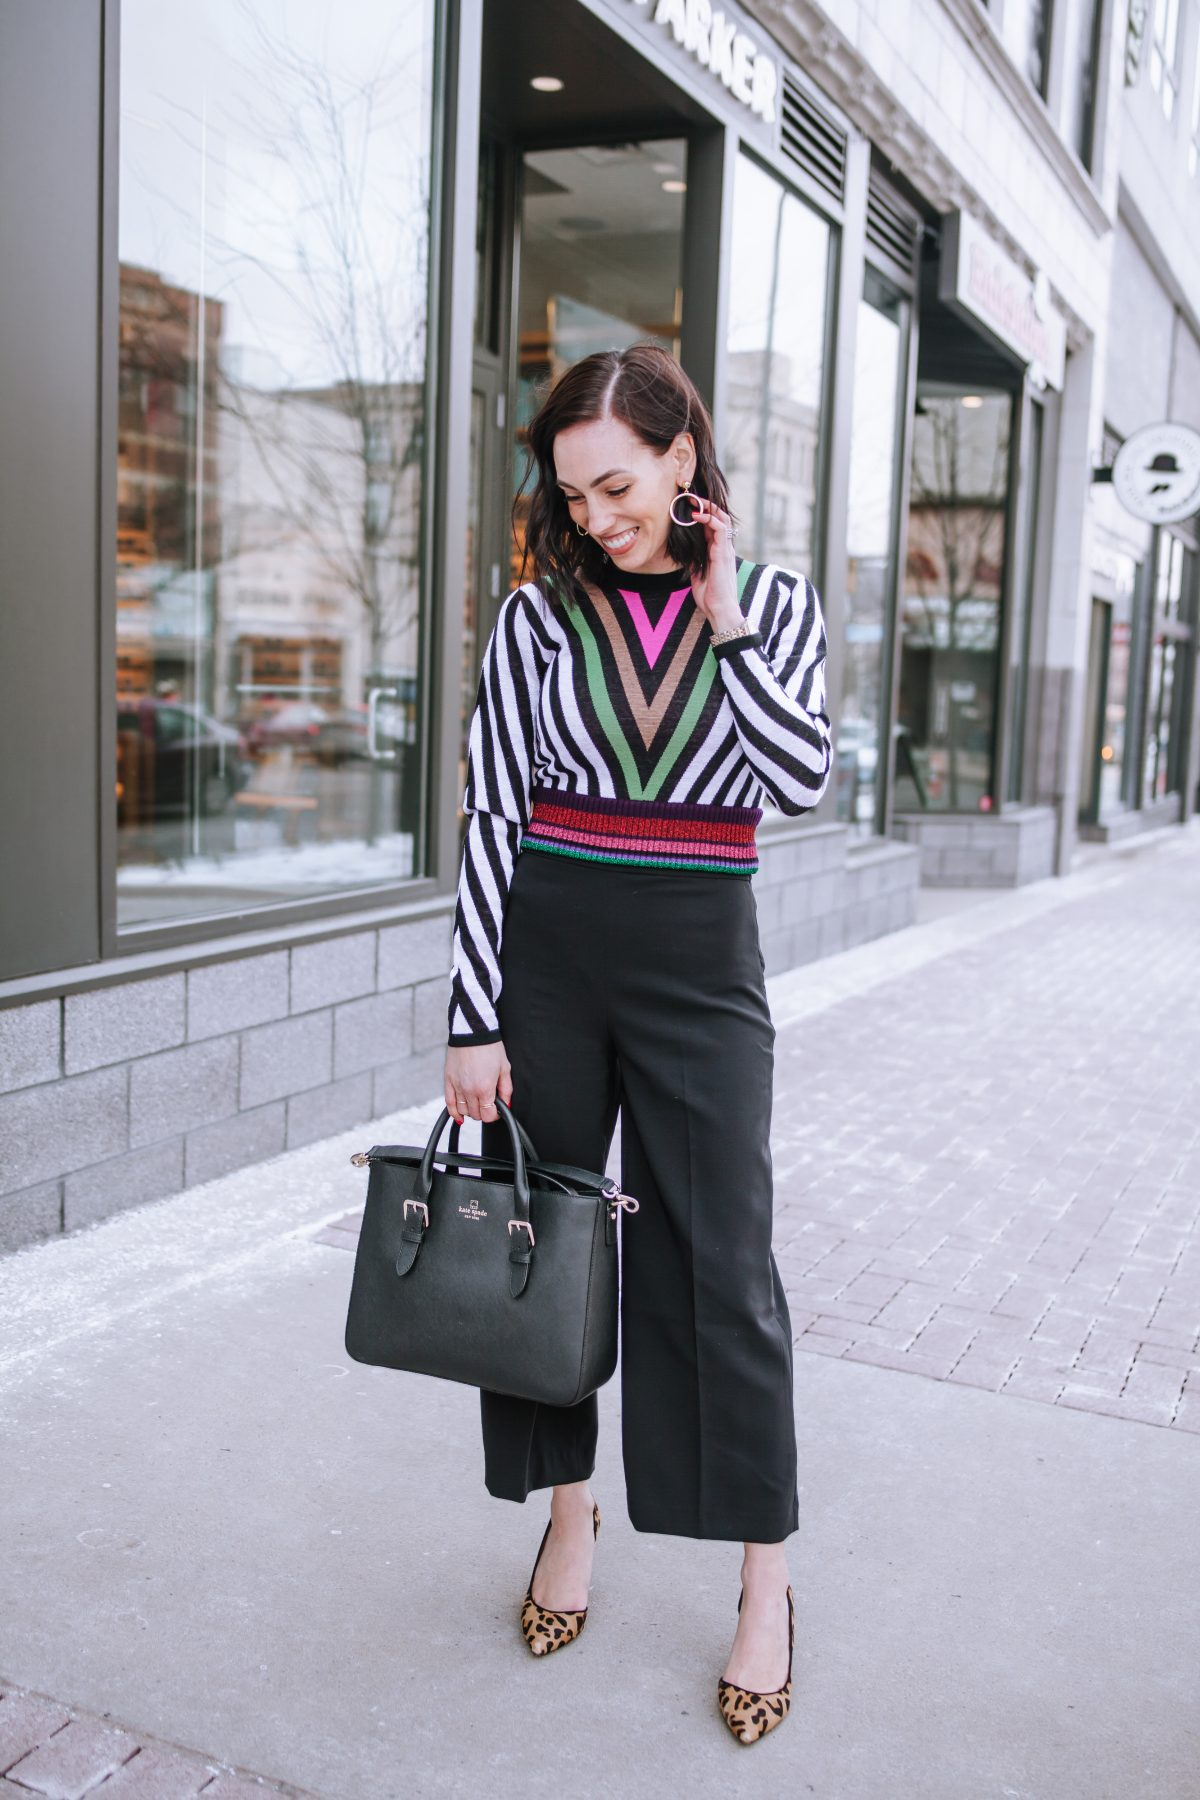 Top US fashion blogger, Wellesley & King, styles a DVF sweater three ways: girl in dvf sweater, culottes, kate spade purse